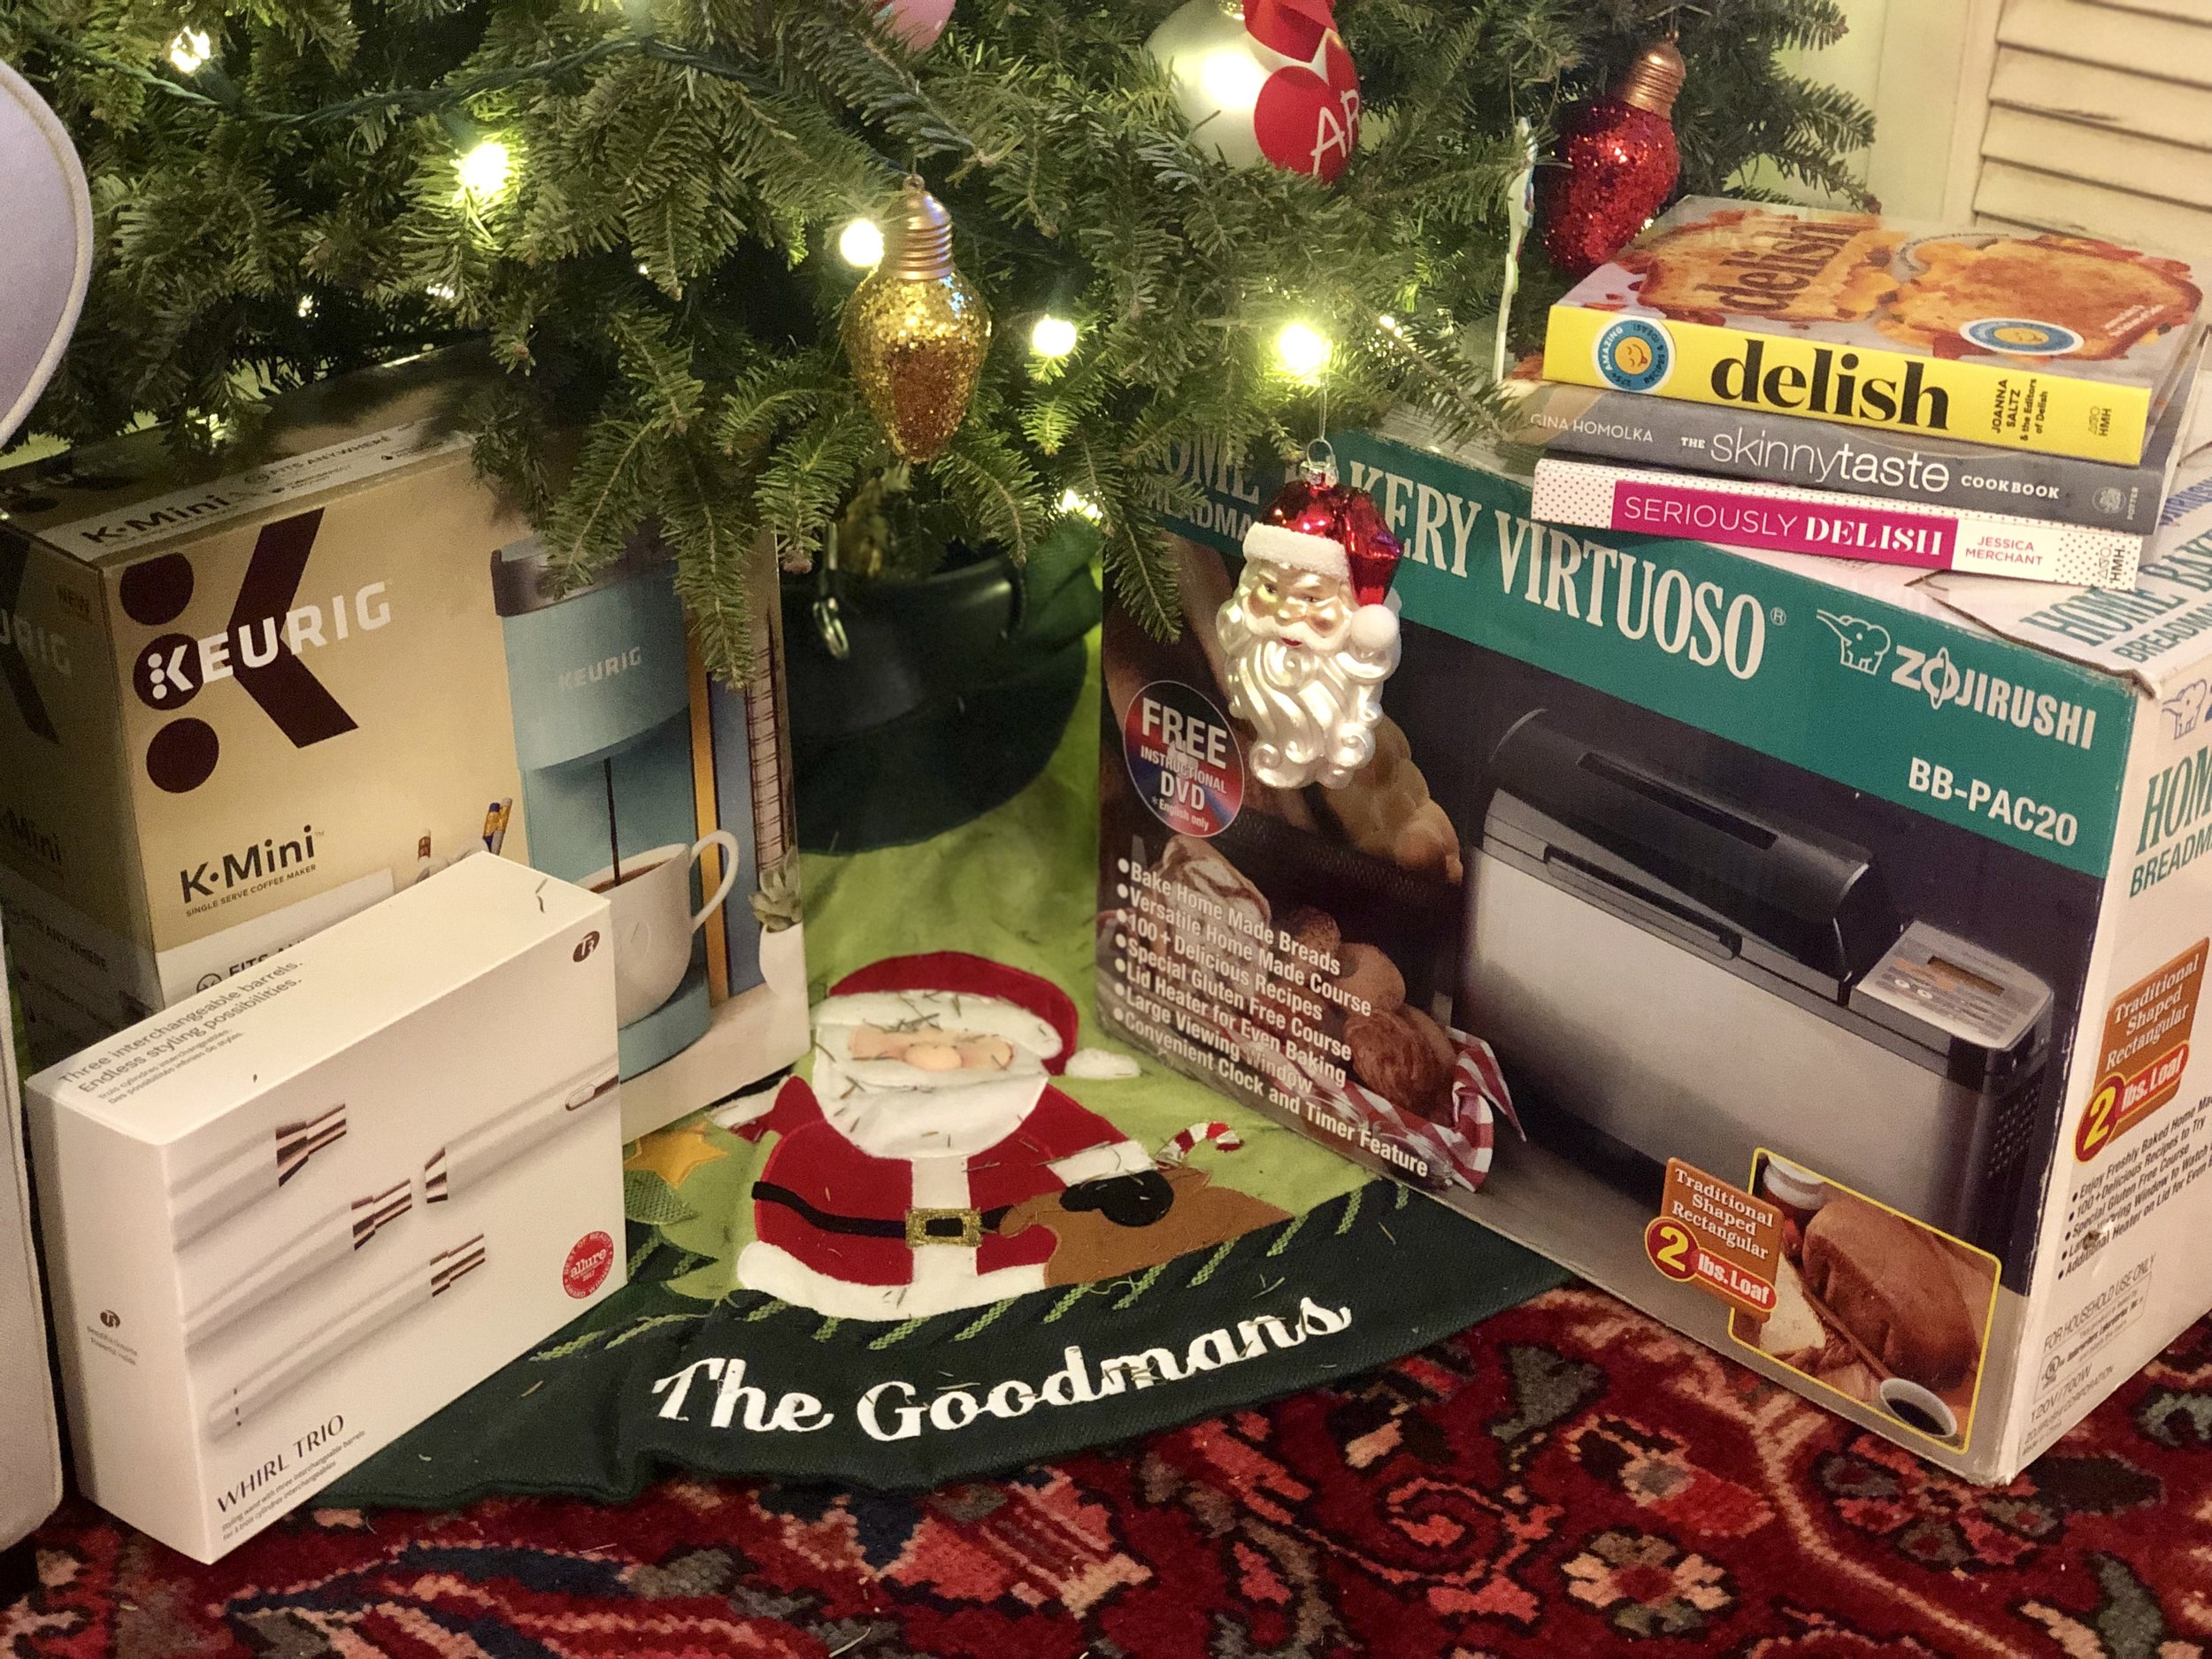 My Gifts-     Keurig     |     T3 Interchangeable Curling Wands      Parker's Gifts-     Bread Maker    |  Cookbooks:     delish,       Seriously Delish,       Skinnytaste